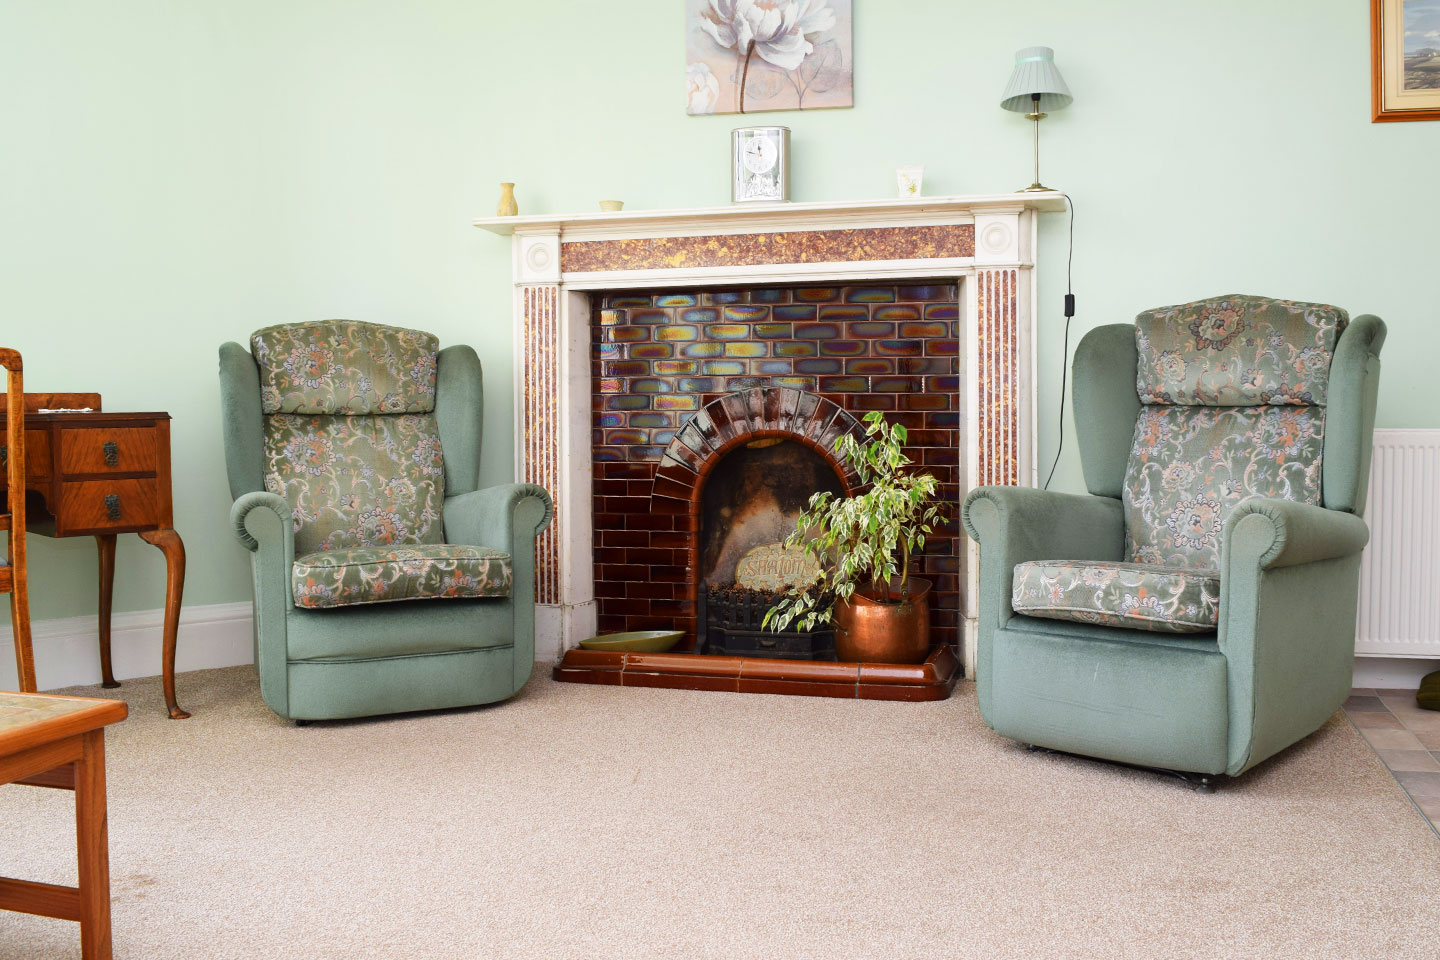 Pine Room - Fireplace and armchairs